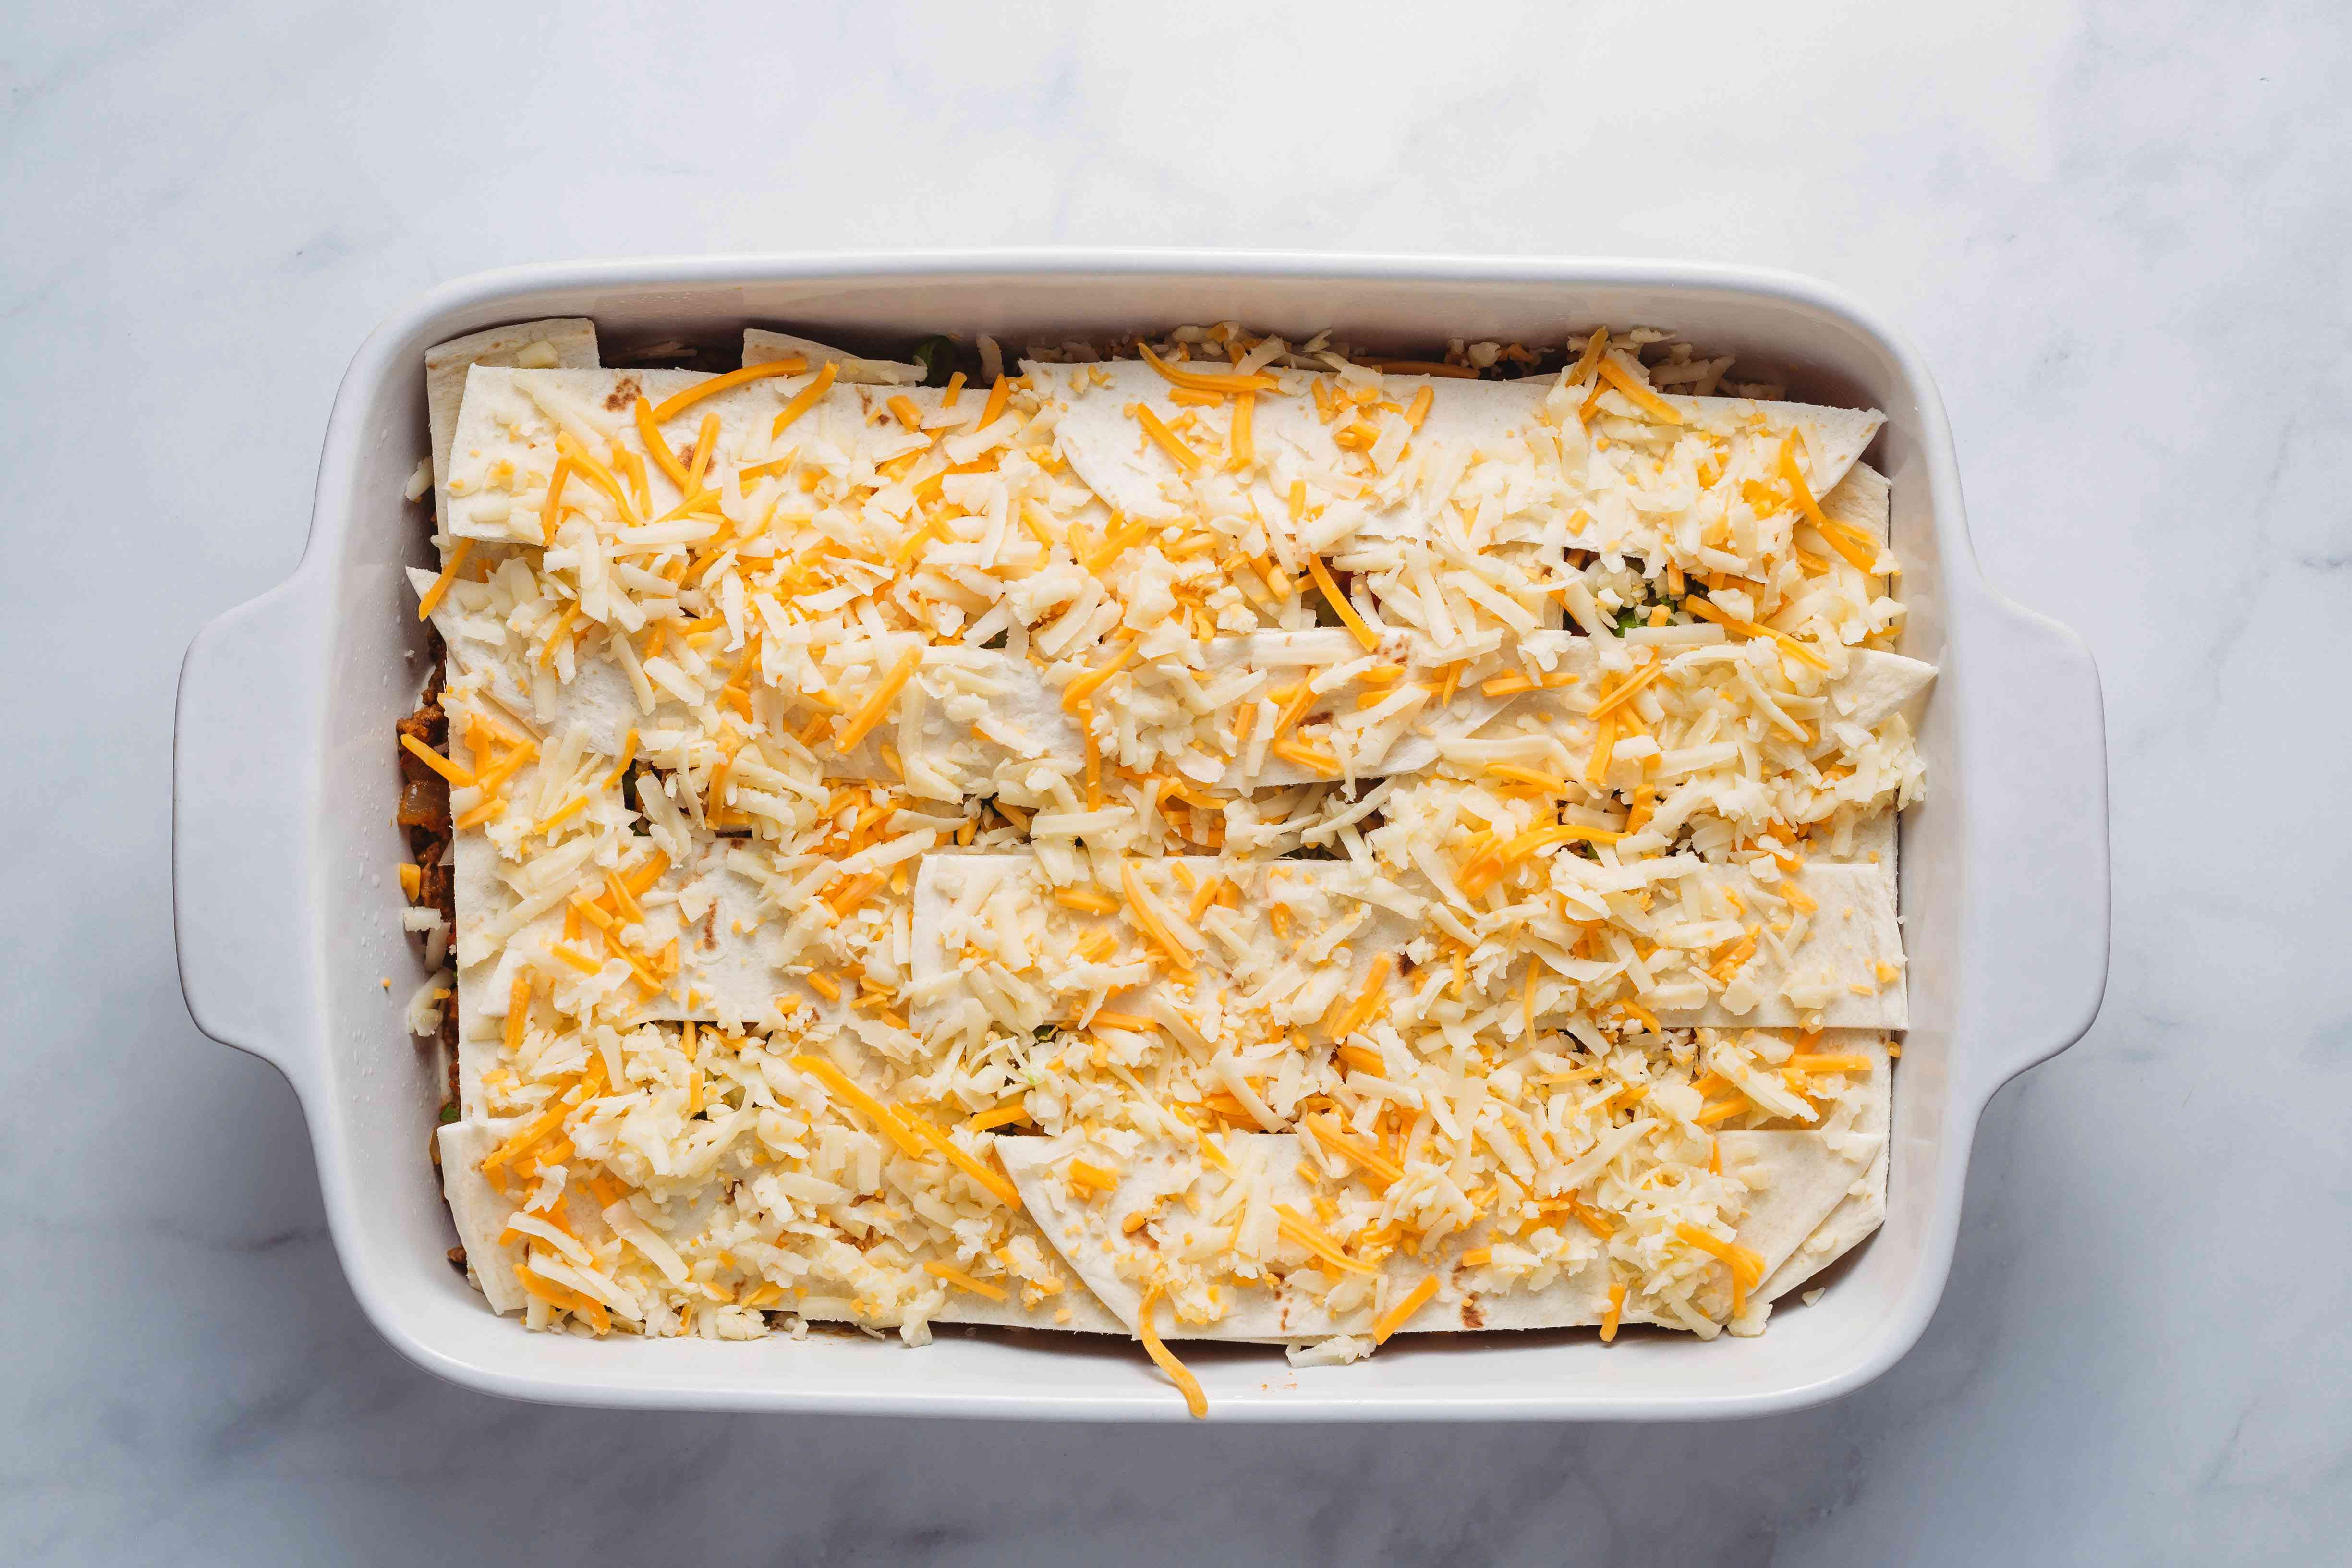 burrito casserole topped with tortillas and cheese